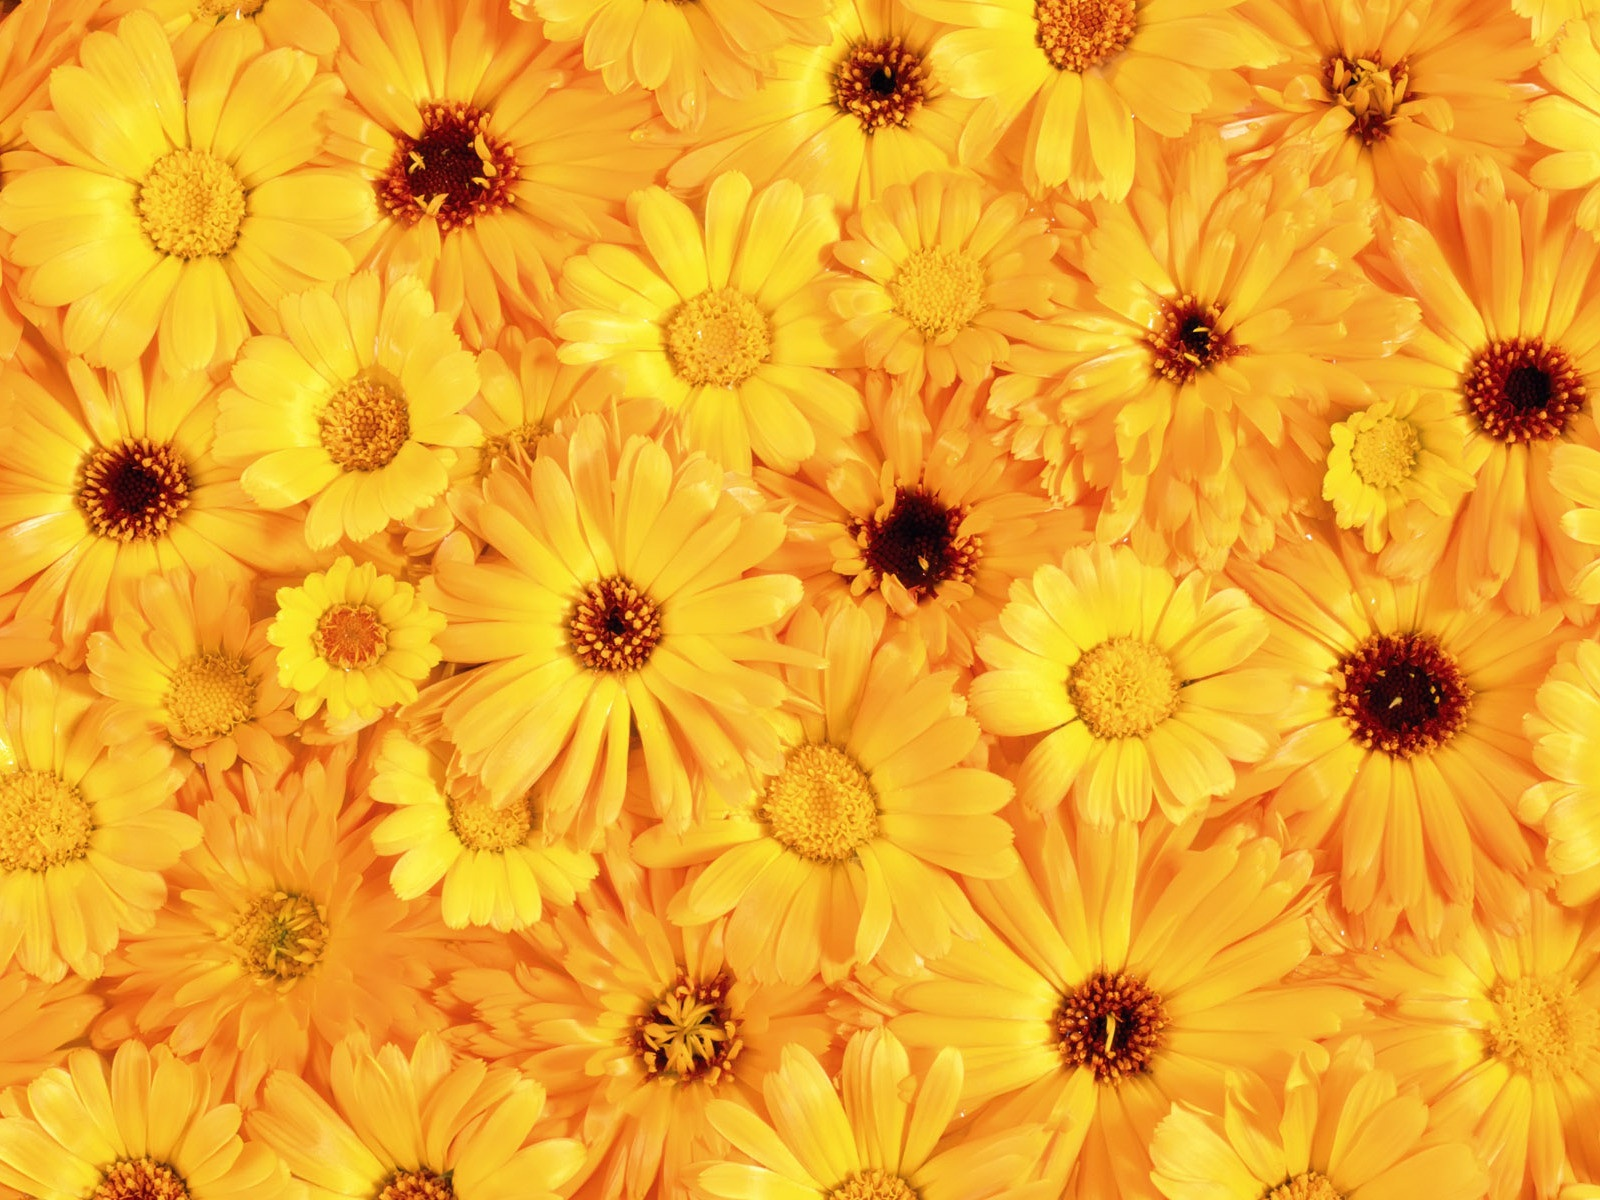 Yellow Flowers Images 21 HD Wallpapers